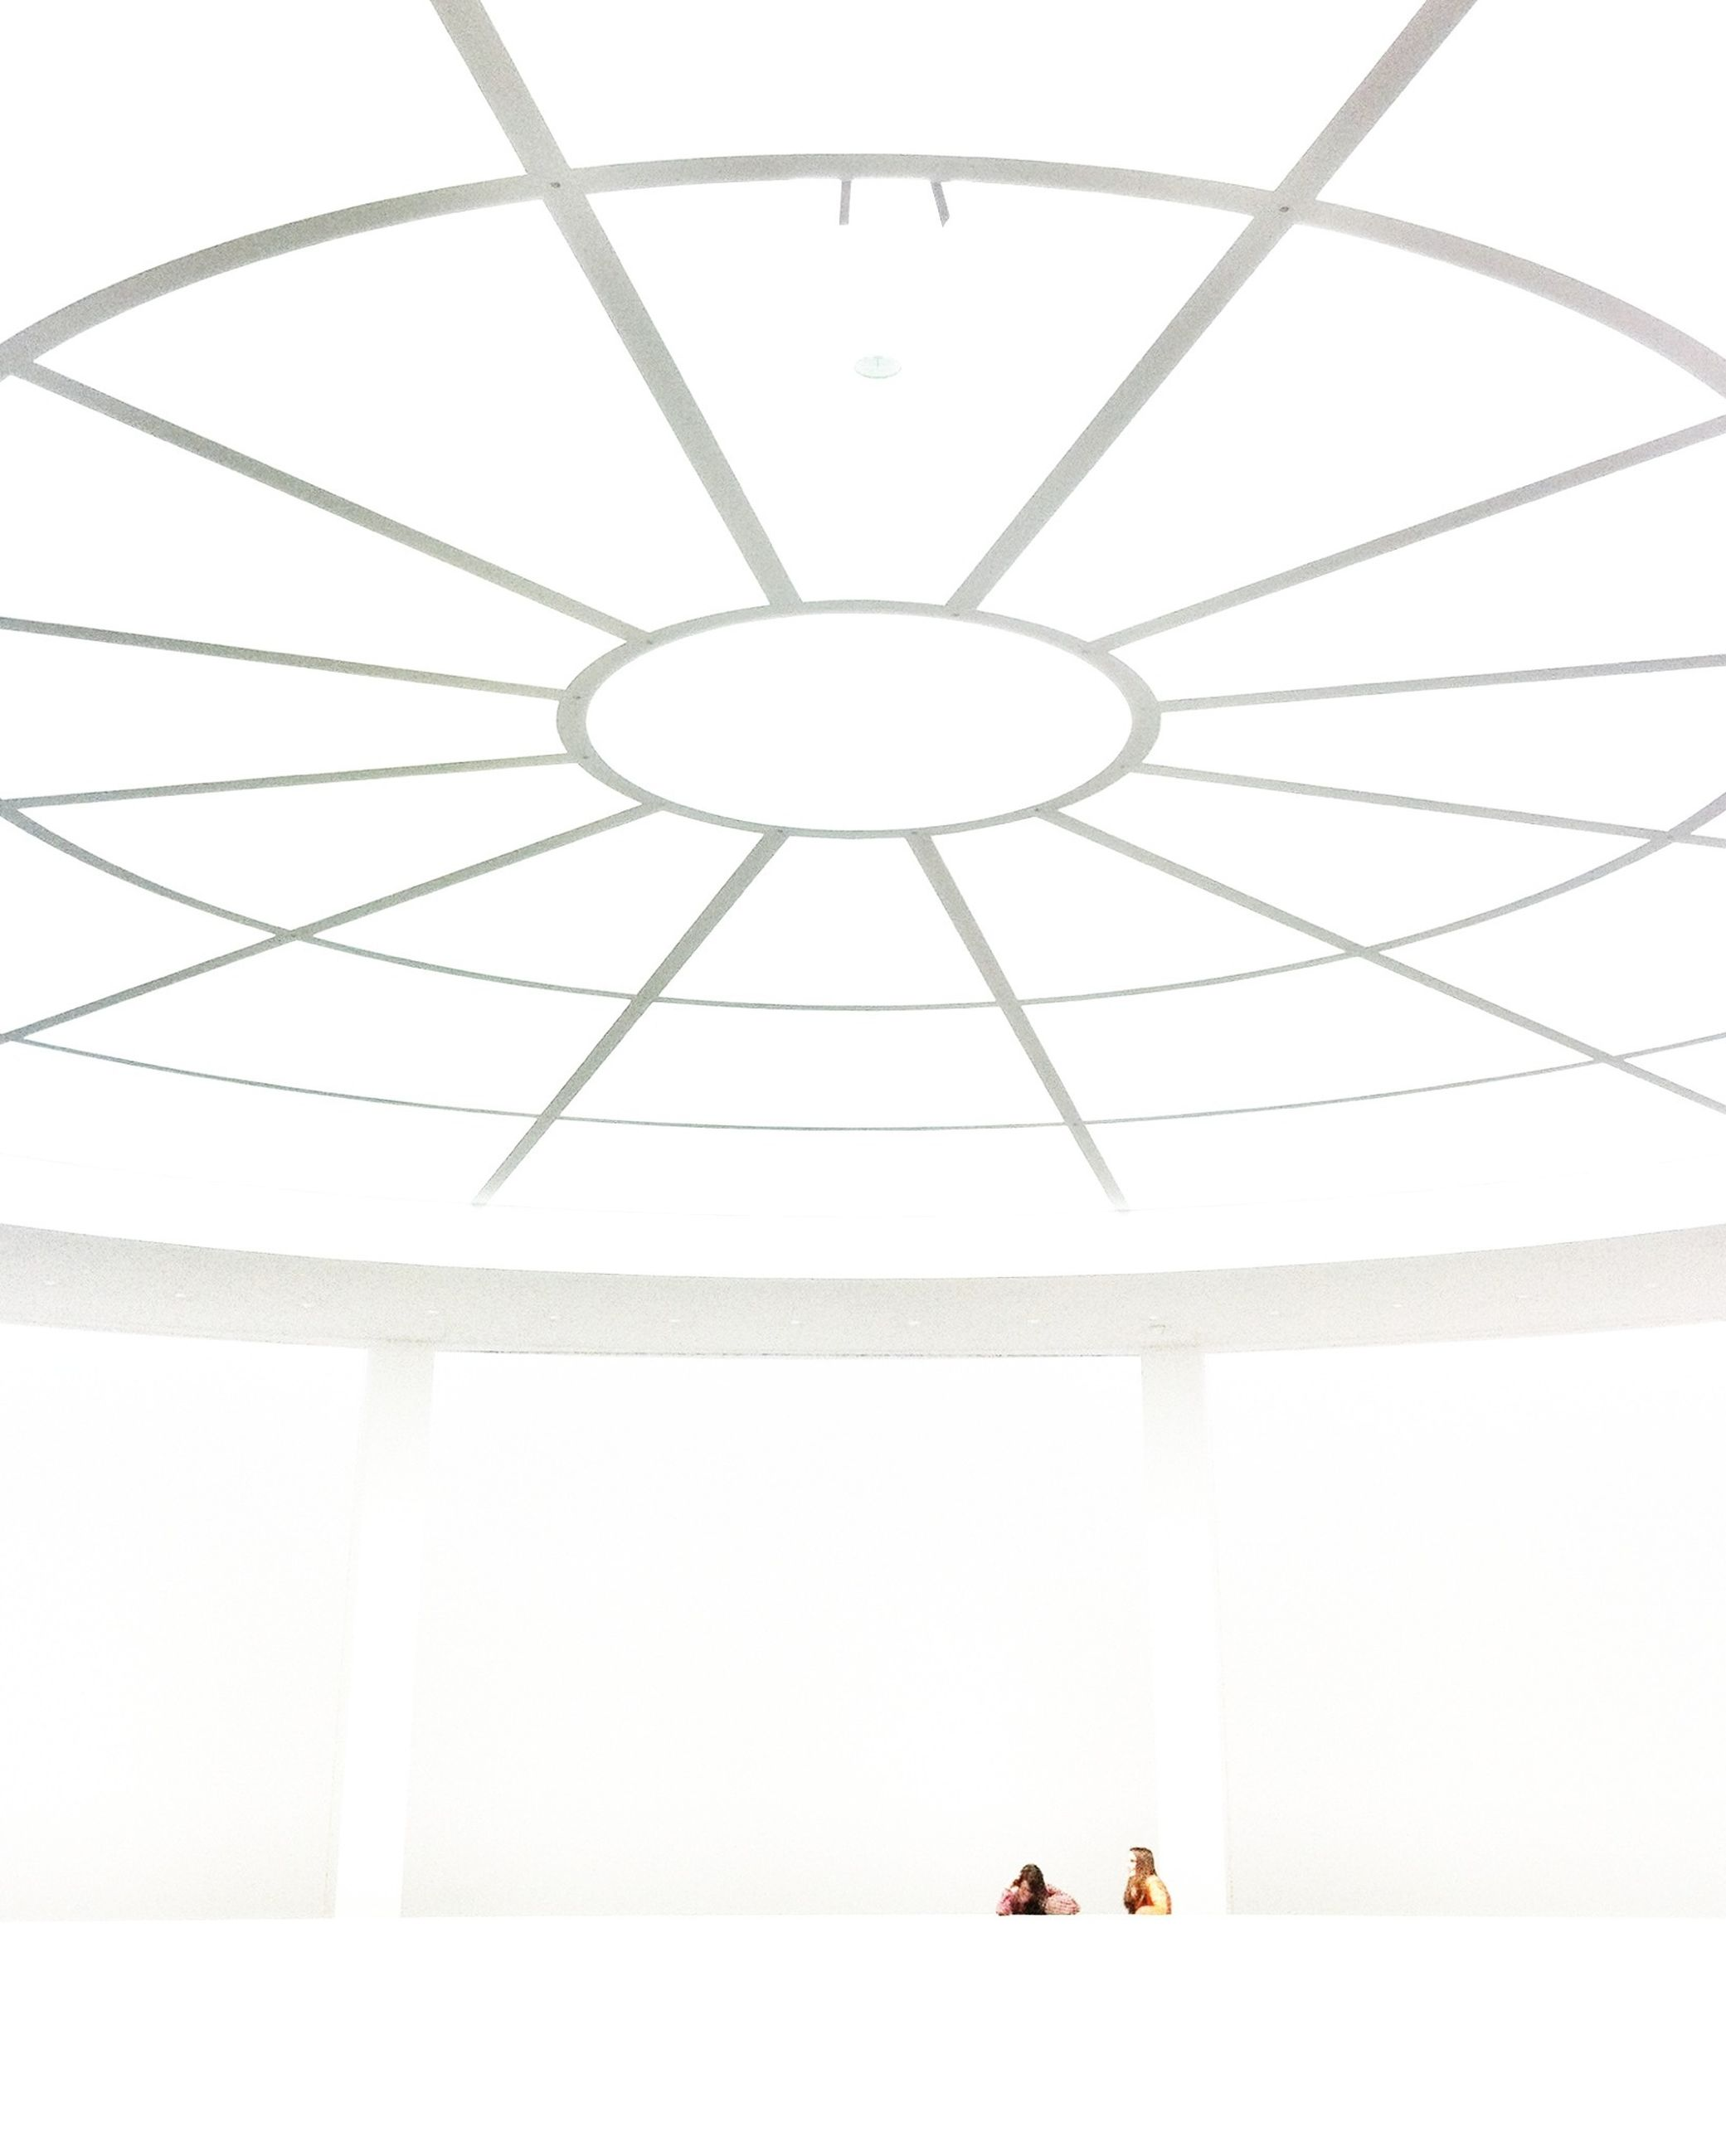 indoors, ceiling, lighting equipment, low angle view, wall - building feature, copy space, hanging, geometric shape, white color, circle, pattern, electric lamp, electricity, built structure, wall, no people, technology, architecture, electric light, modern